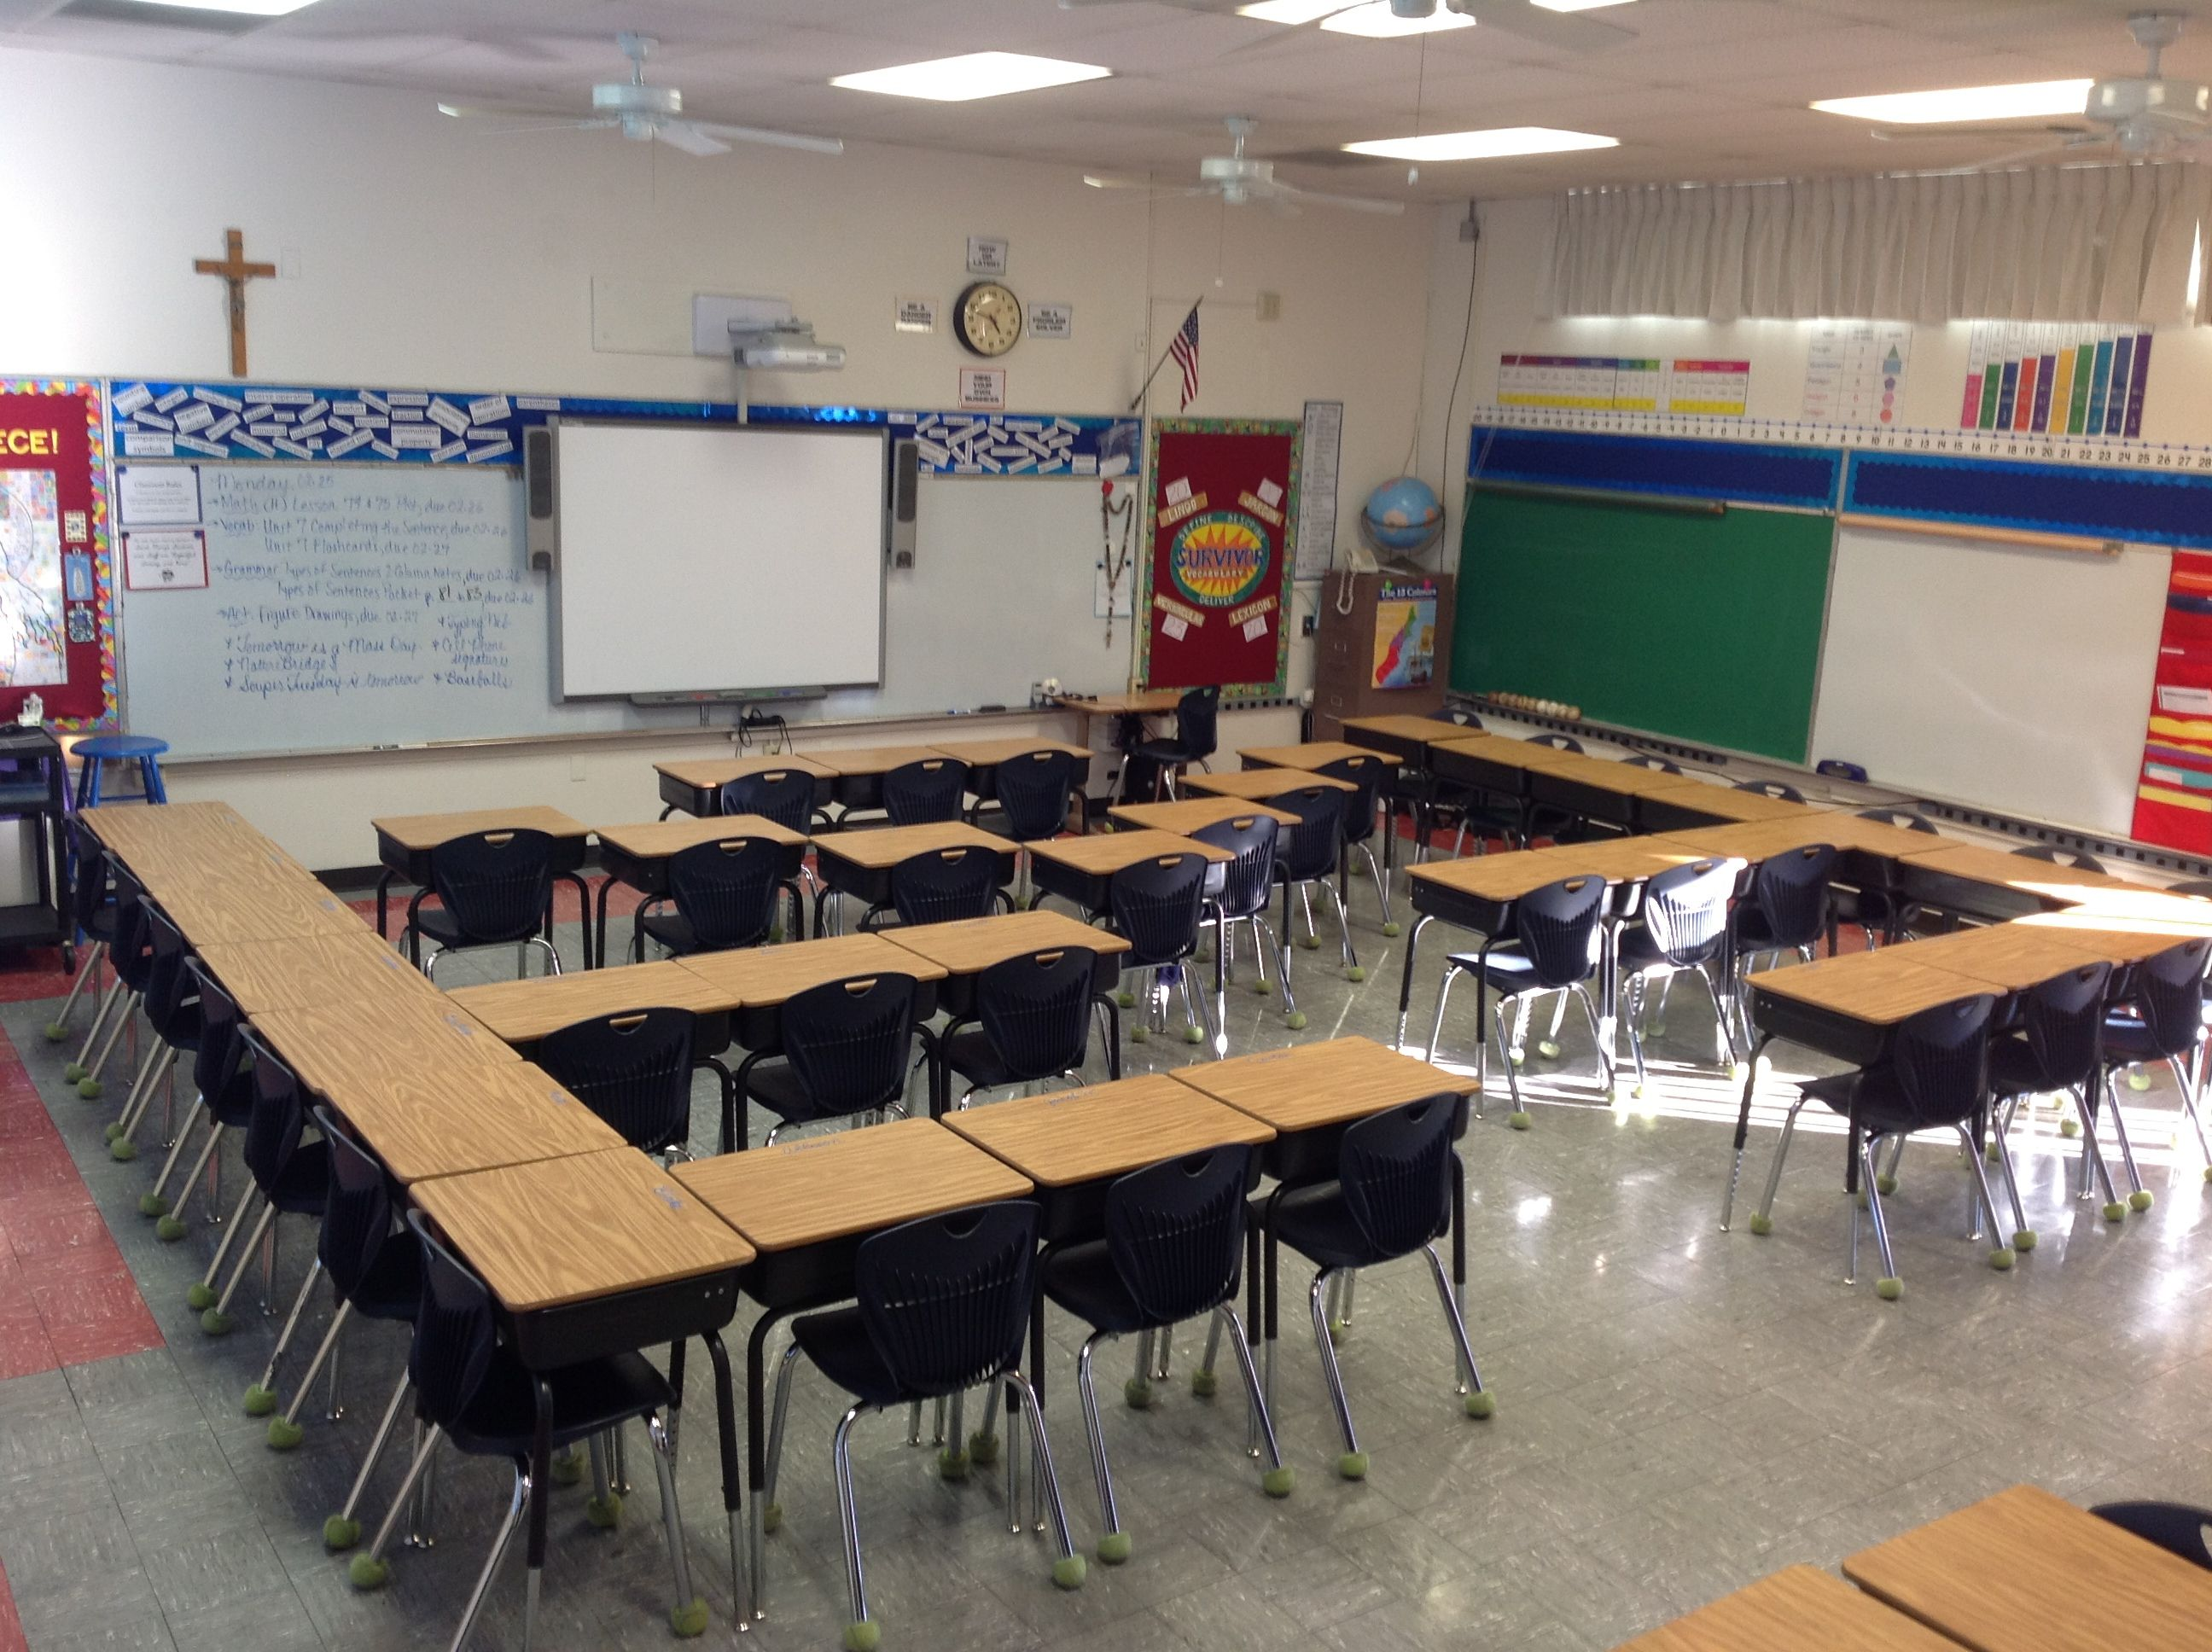 It feels like time to spring clean in my classroom. Here